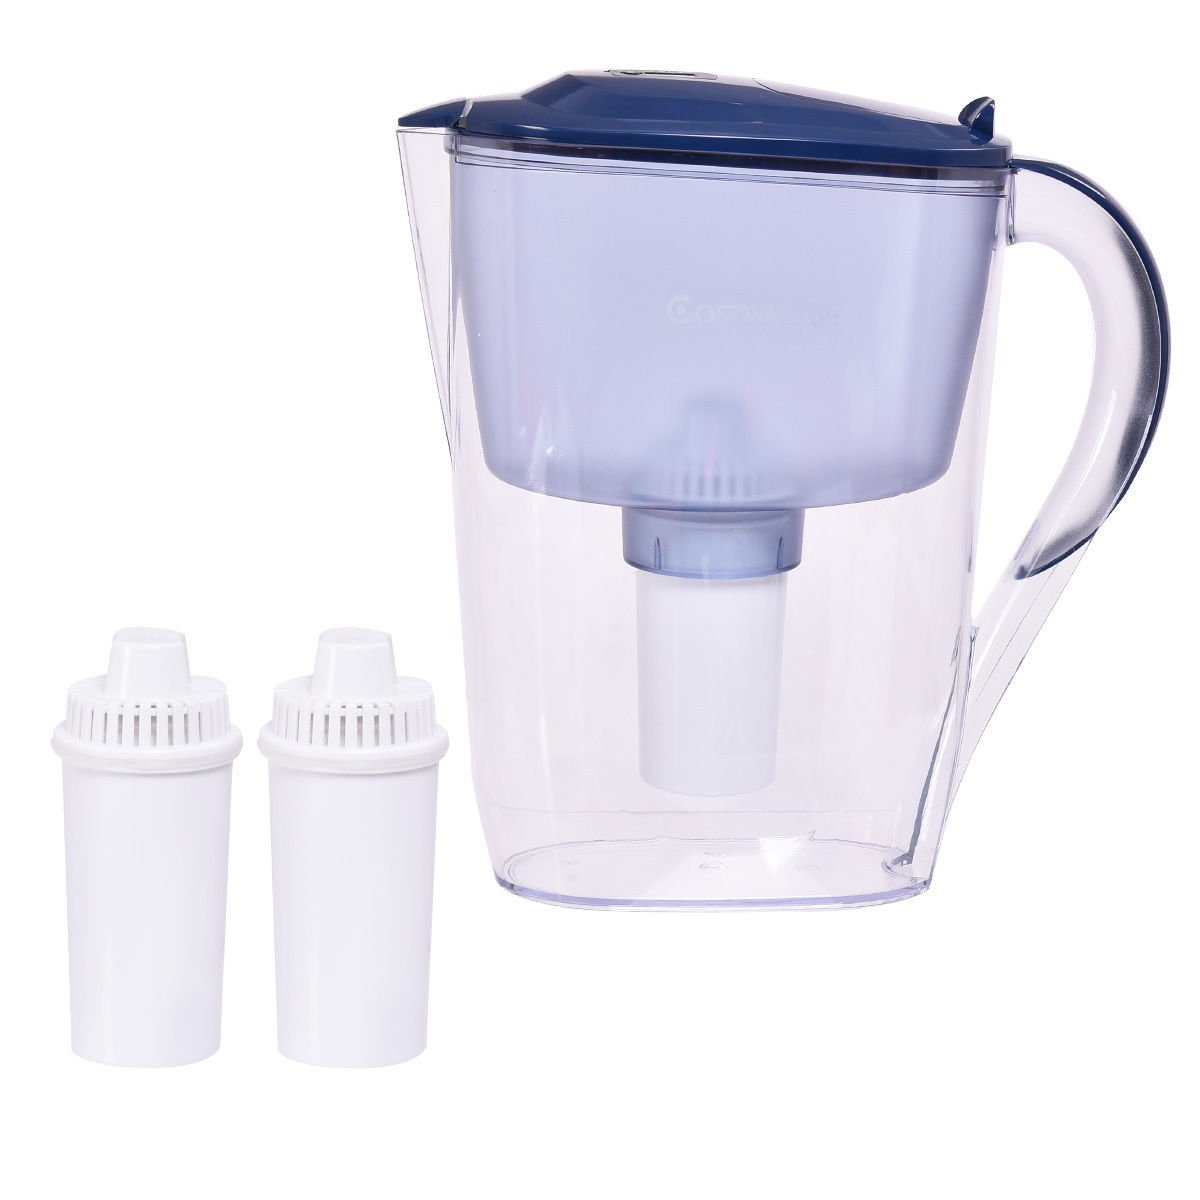 Costway 10 Cup Everyday BPA Free Water Pitcher Filter with 3 Filter (Blue)